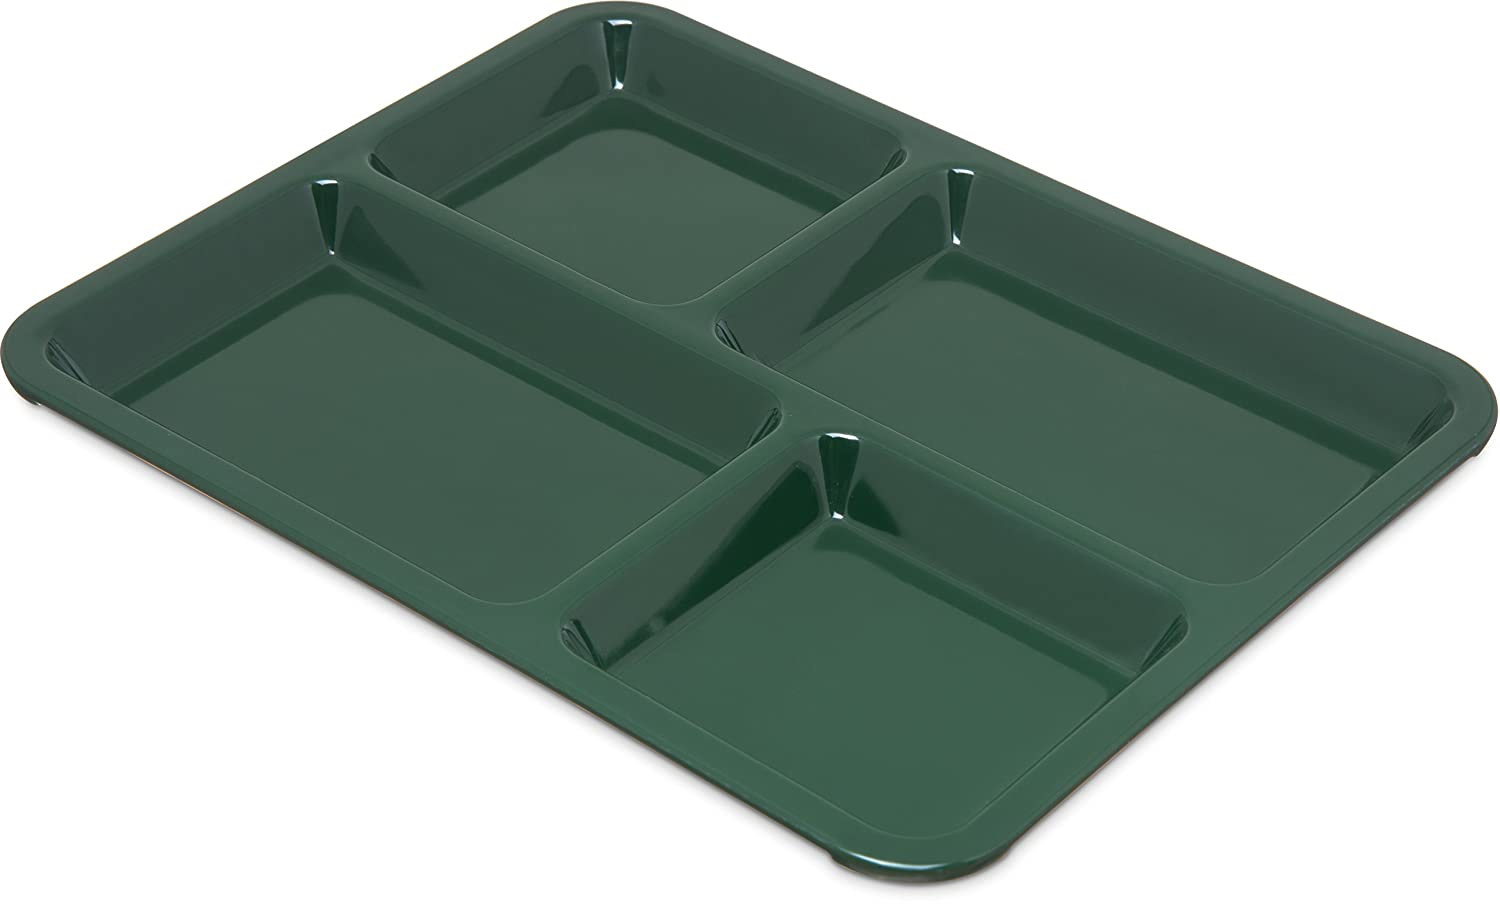 Carlisle KL44408 Right Hand 4-Compartment Cafeteria / Fast Food Tray, 8.5